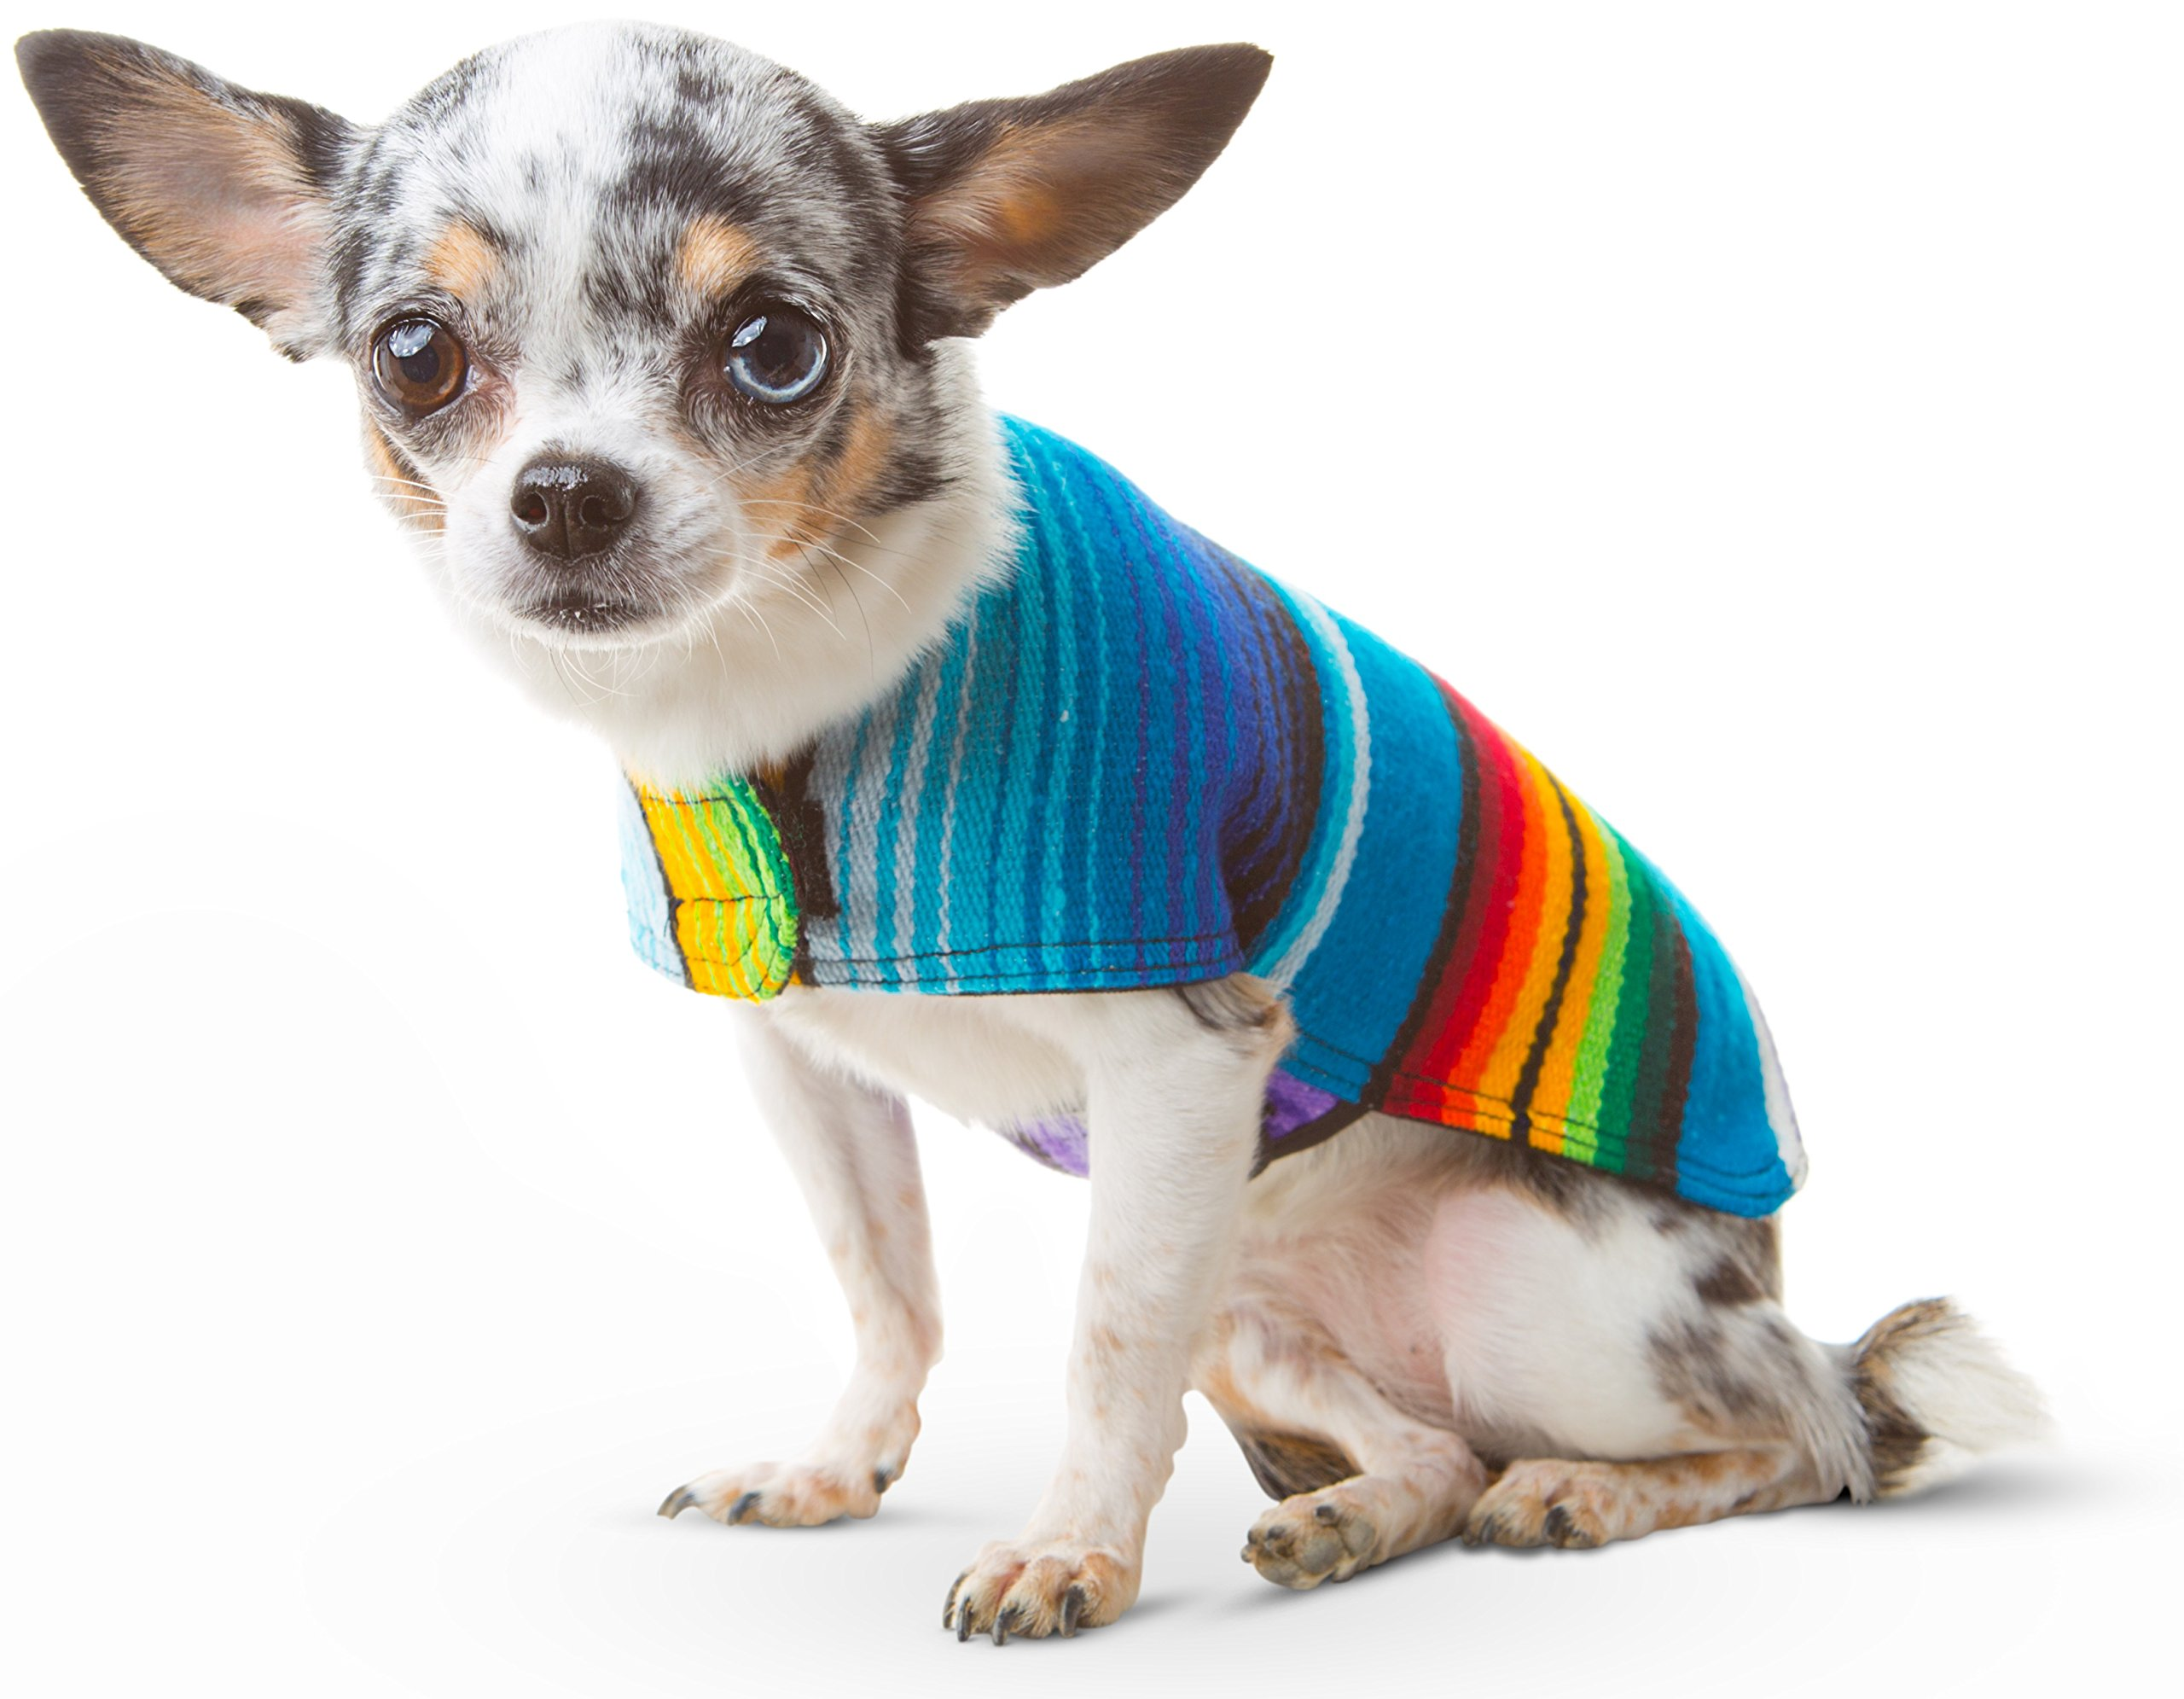 Baja Ponchos Dog Clothes - Handmade Dog Poncho - Cinco De Mayo Costume from Authentic Mexican Blanket (No Fringe, XXS)